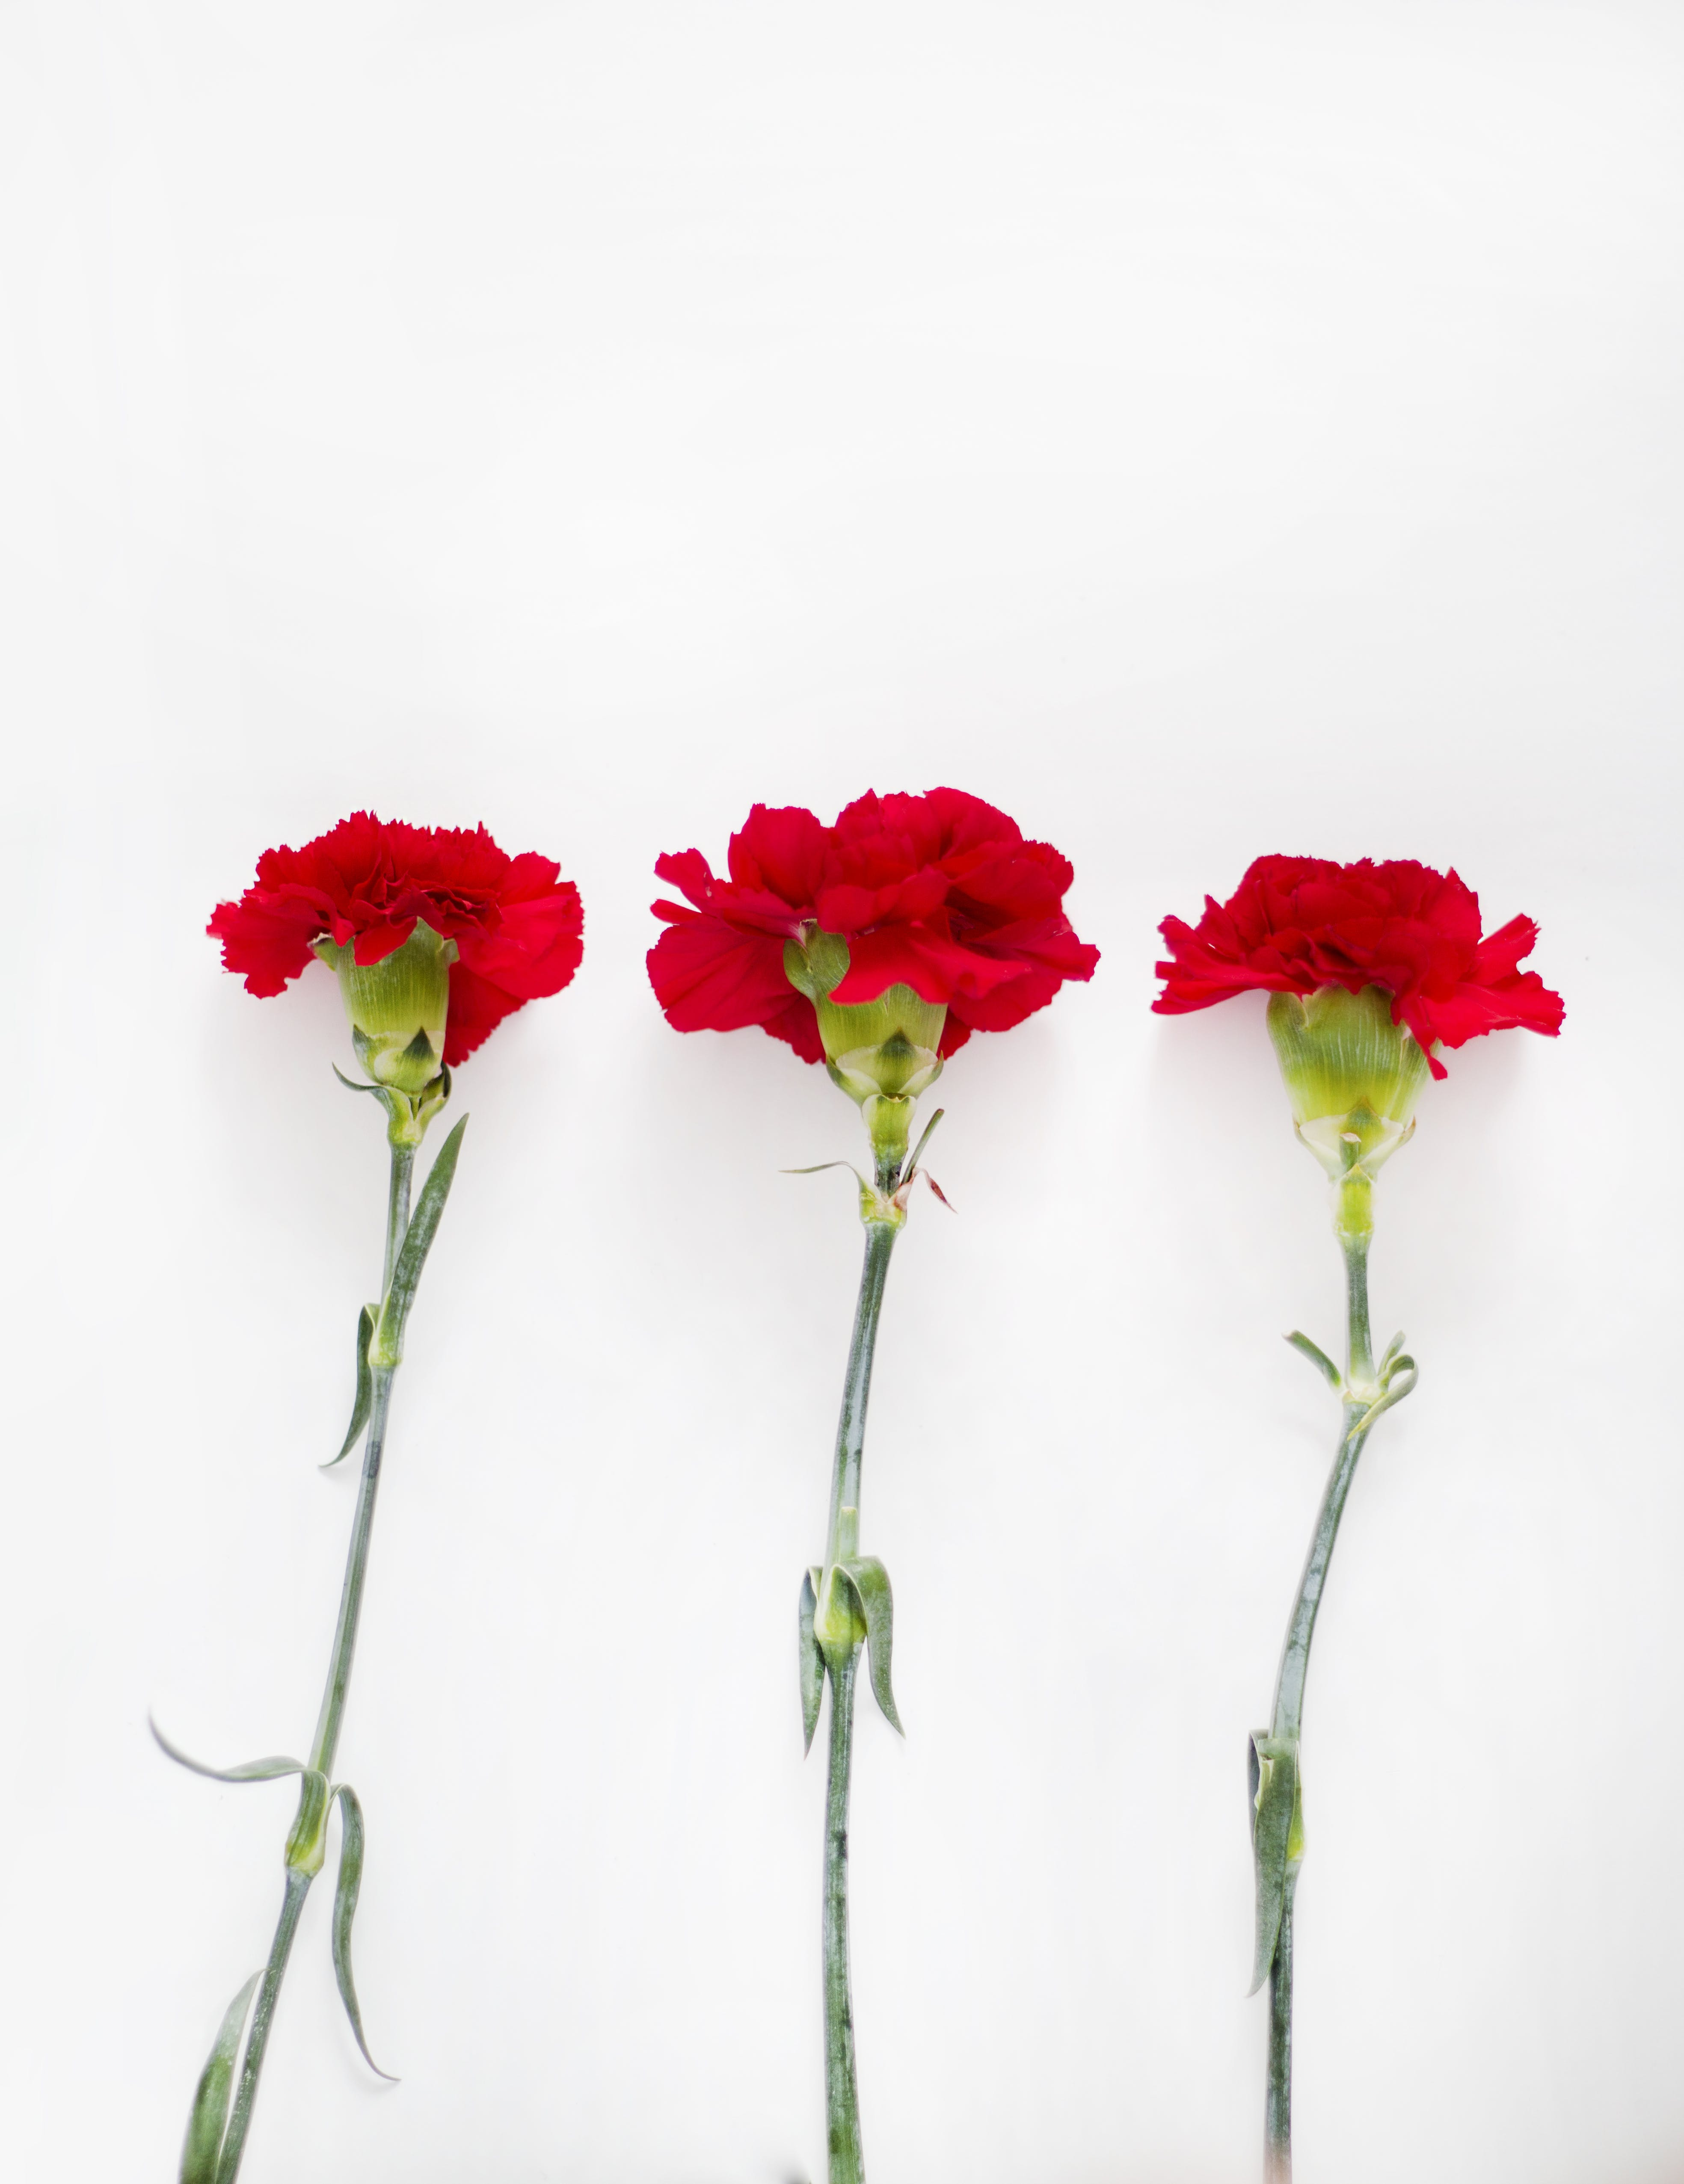 Flatlay Photography of Carnation